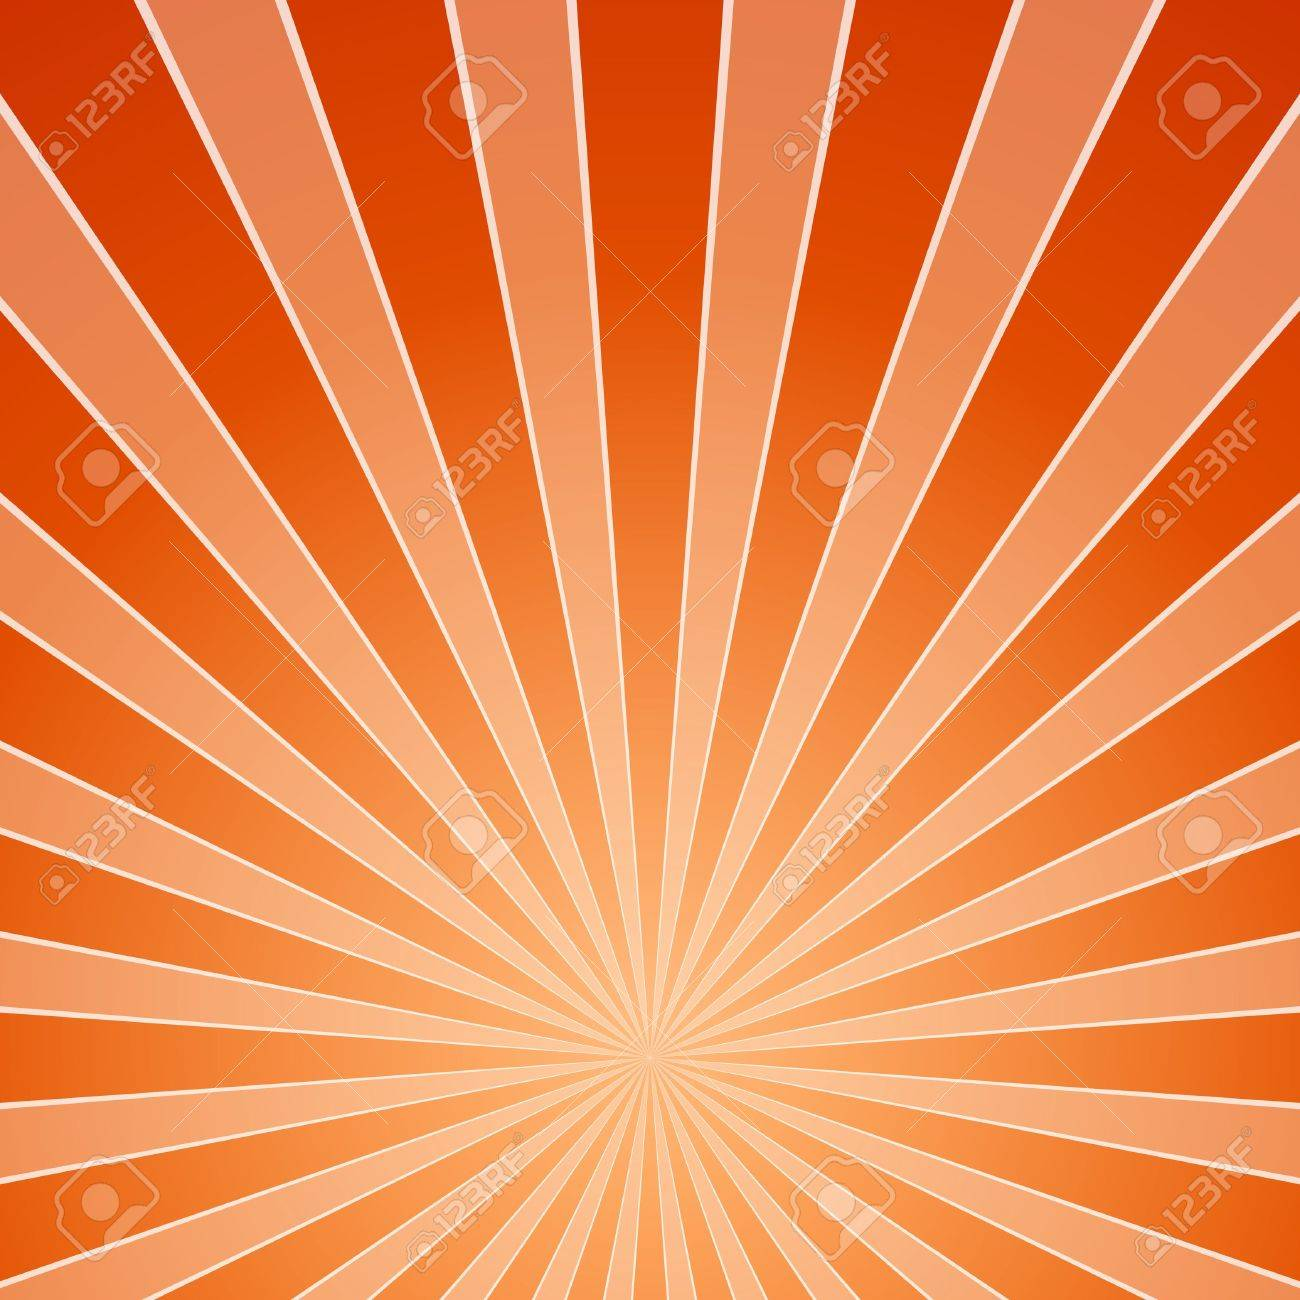 Red Glowing Background Stock Vector - 16645463